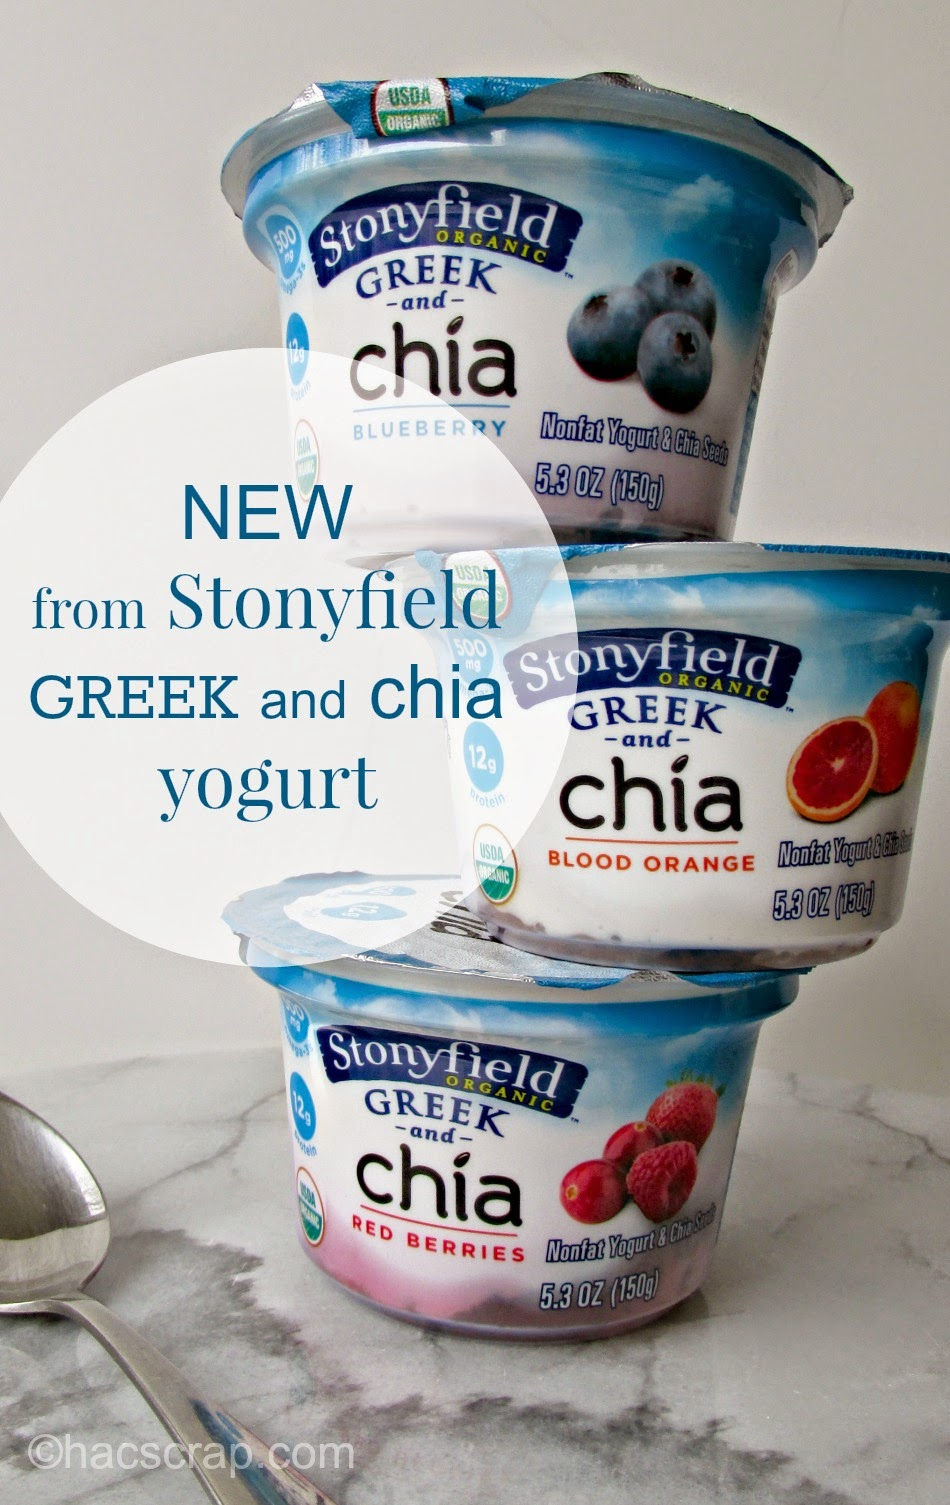 New Greek and Chia Yogurt from Stonyfield